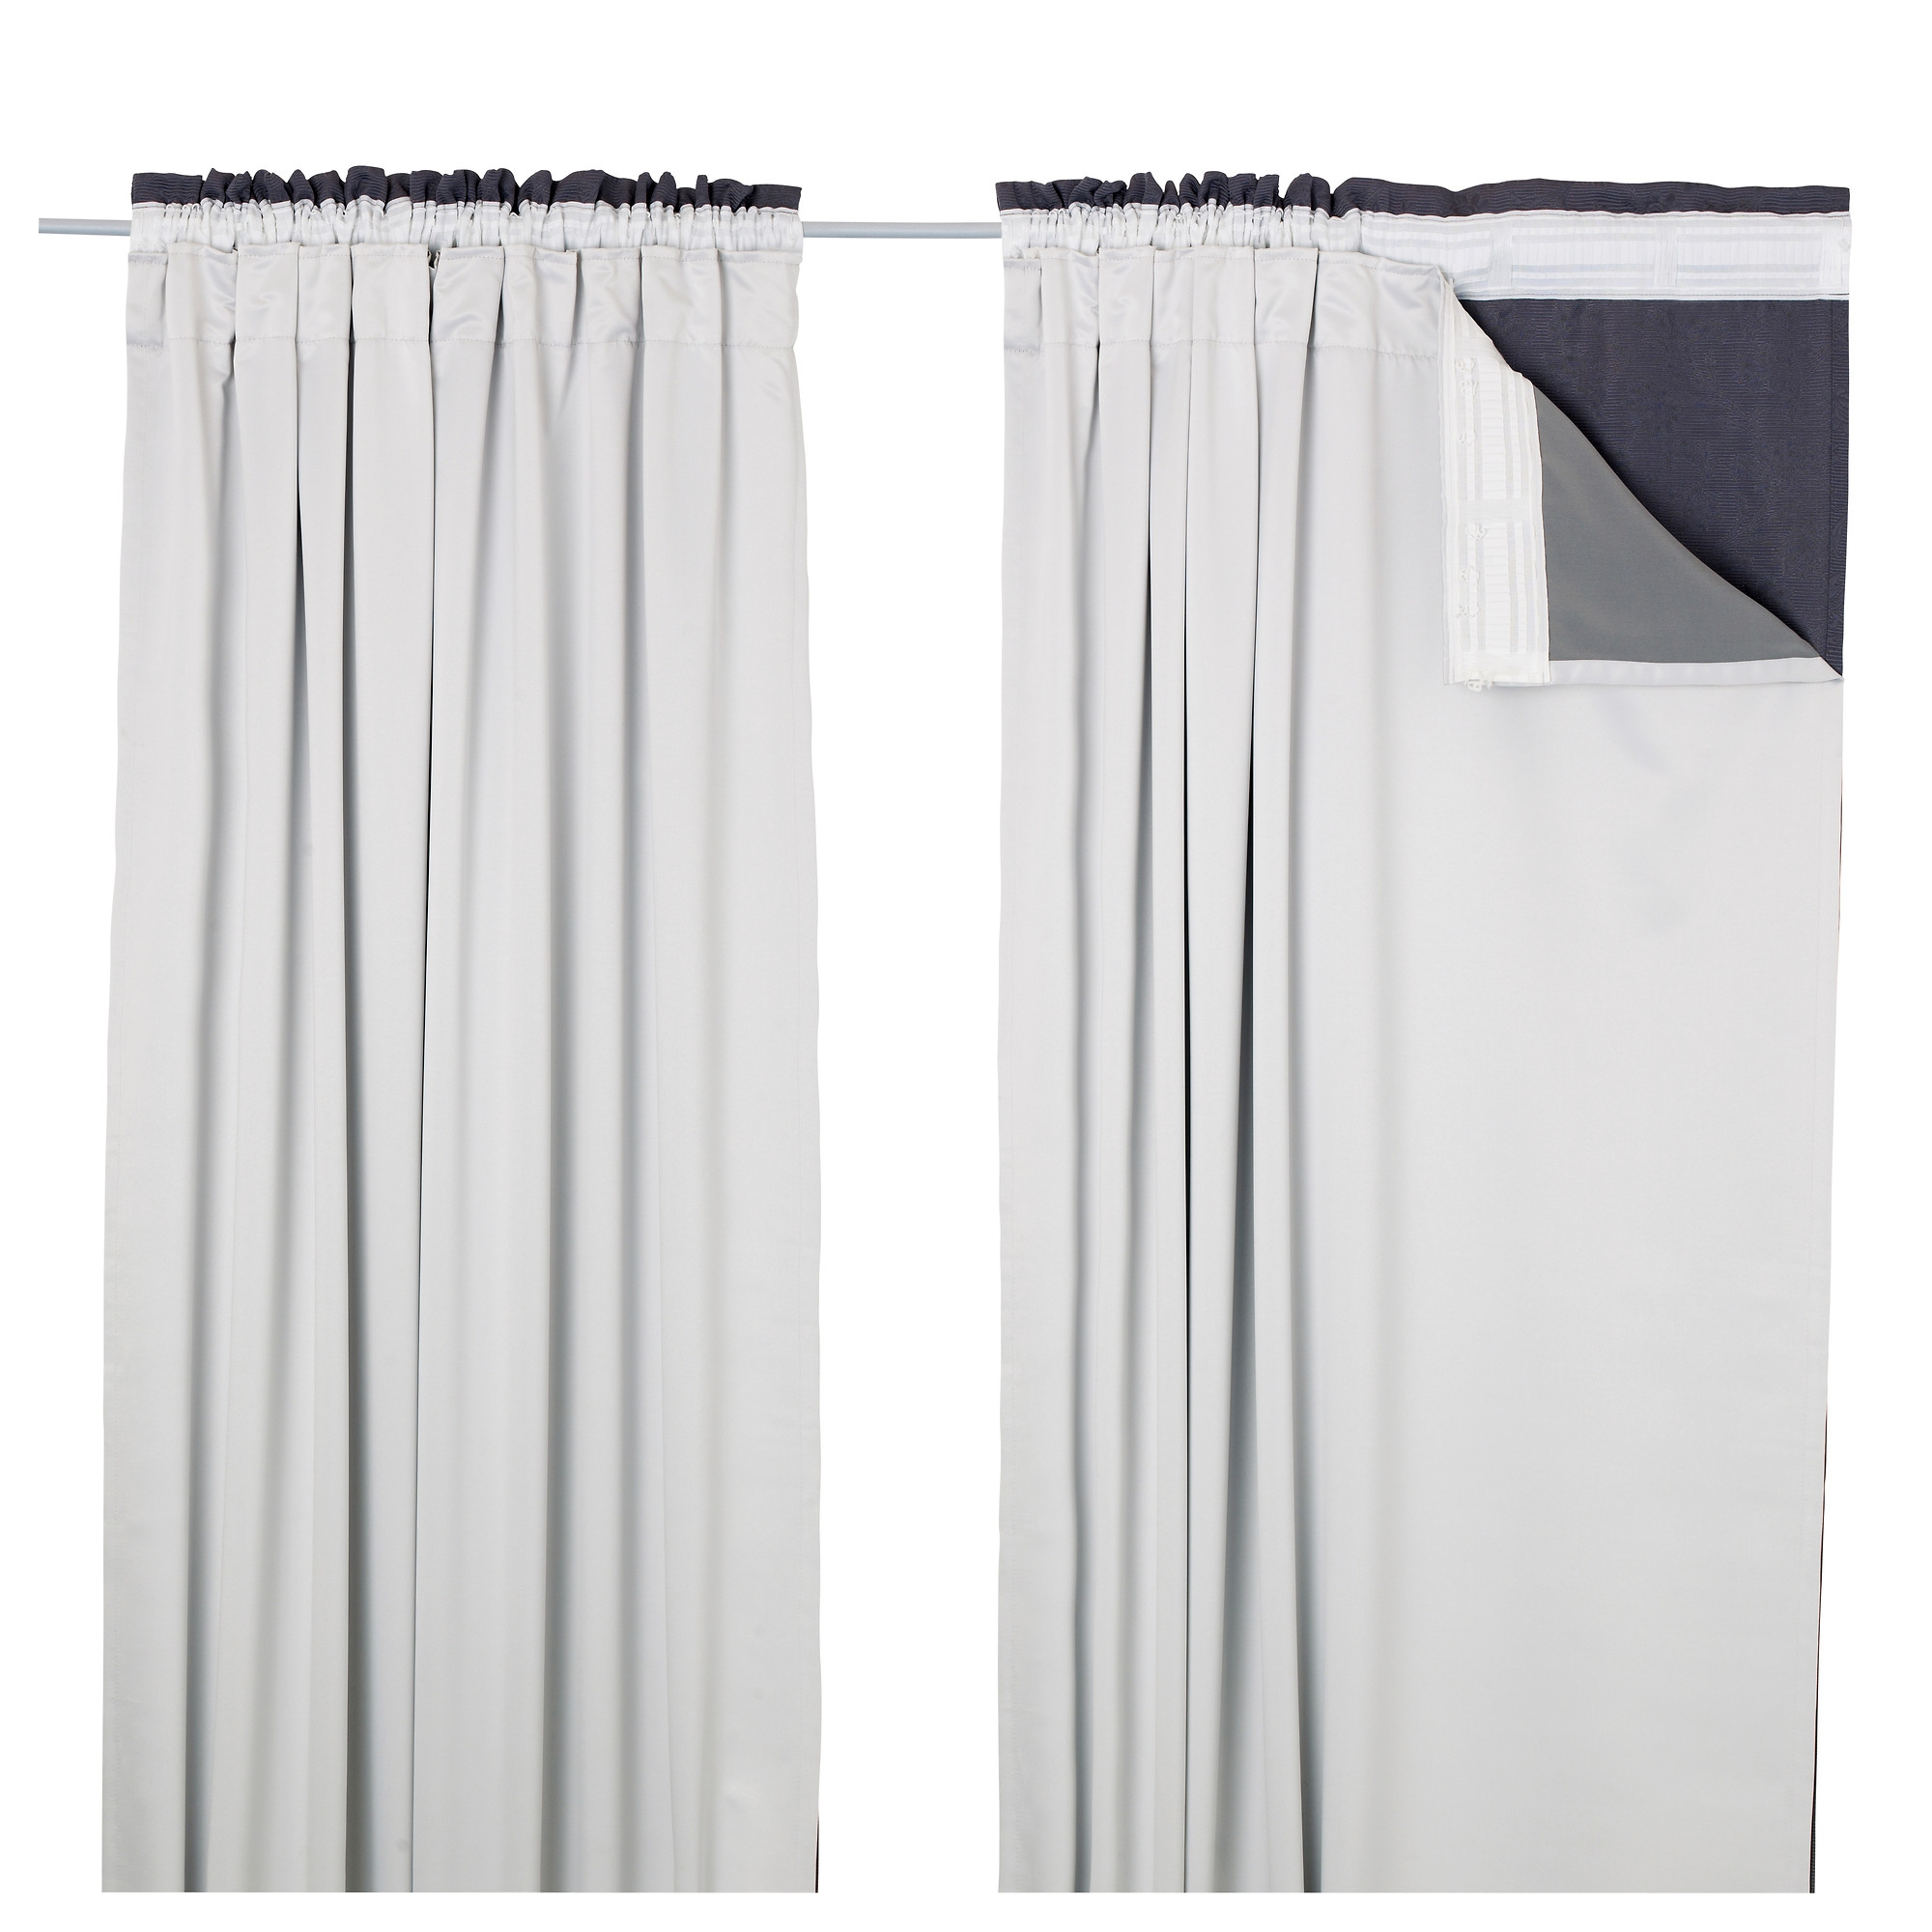 Glansnva Curtain Liners 1 Pair 56×94 Ikea Throughout Plain White Blackout Curtains (Image 11 of 15)